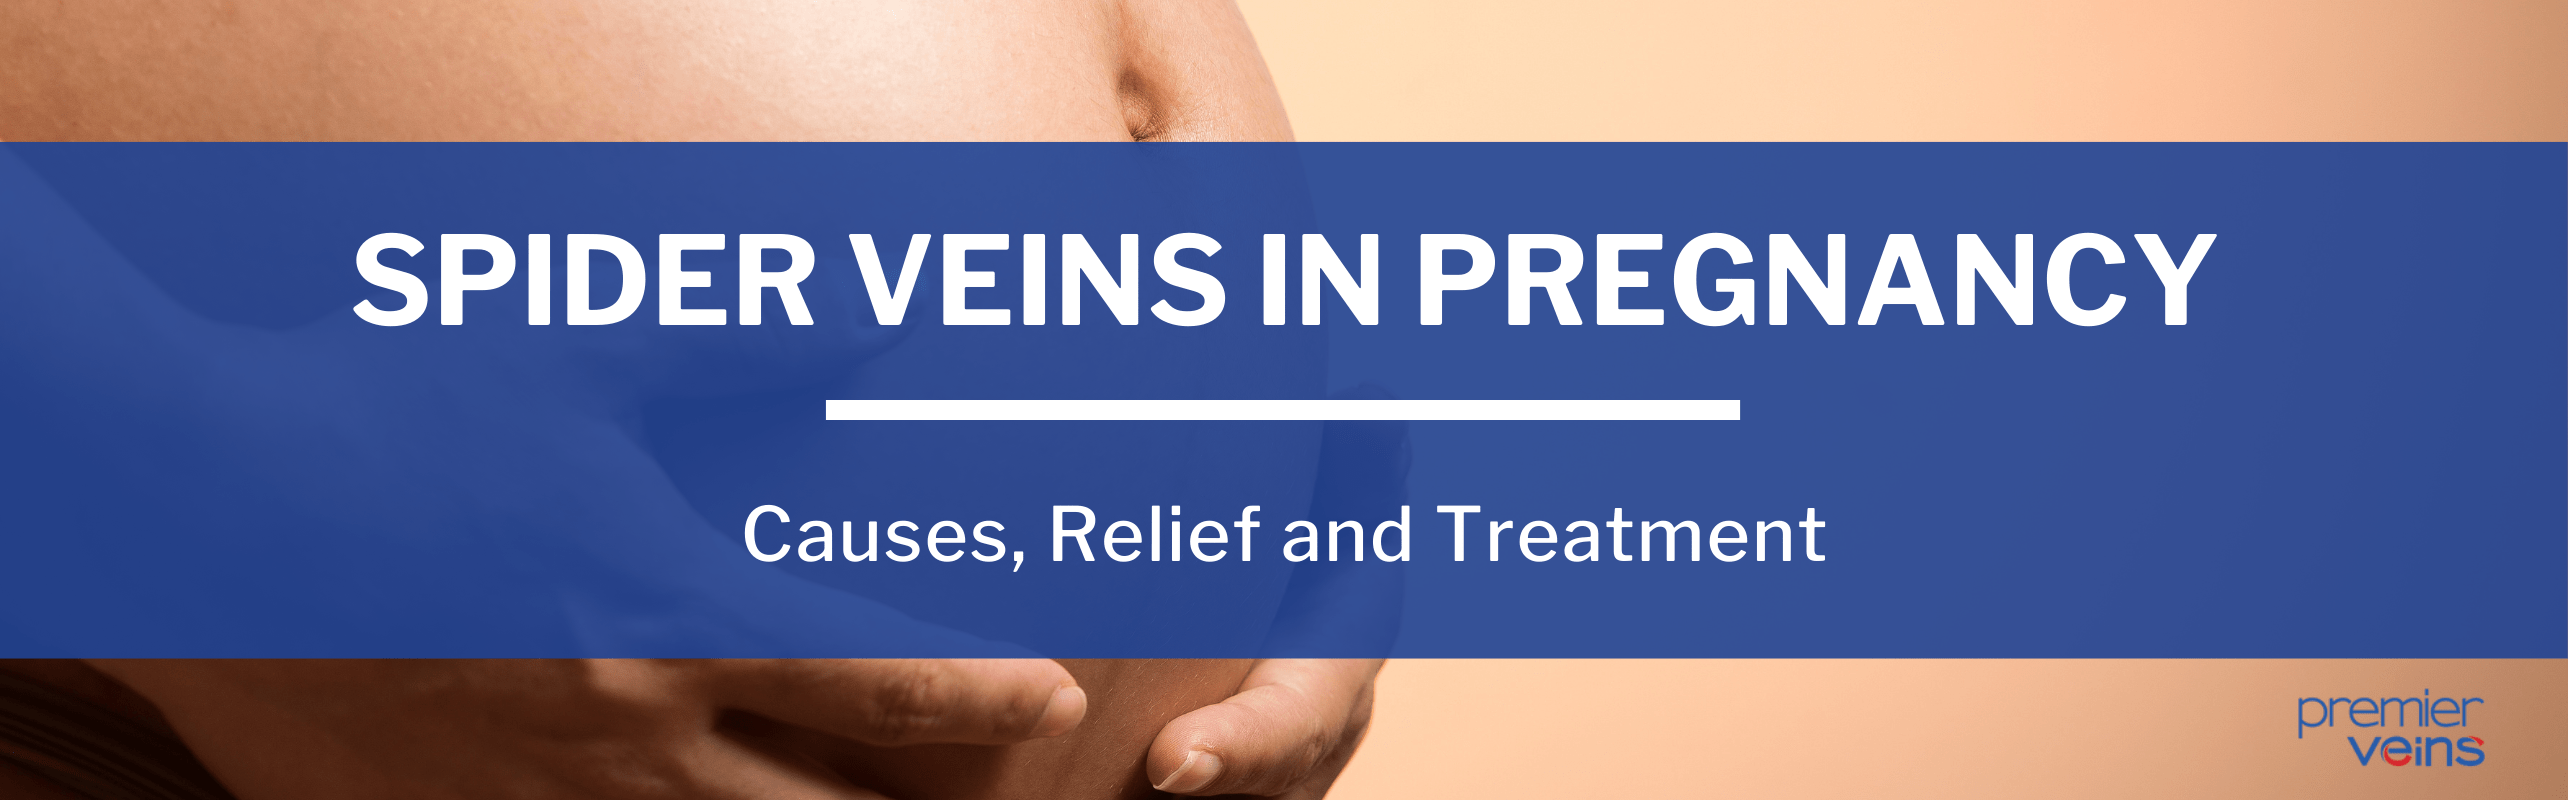 What Causes Spider Veins in Pregnancy, and How Can You Treat Them?